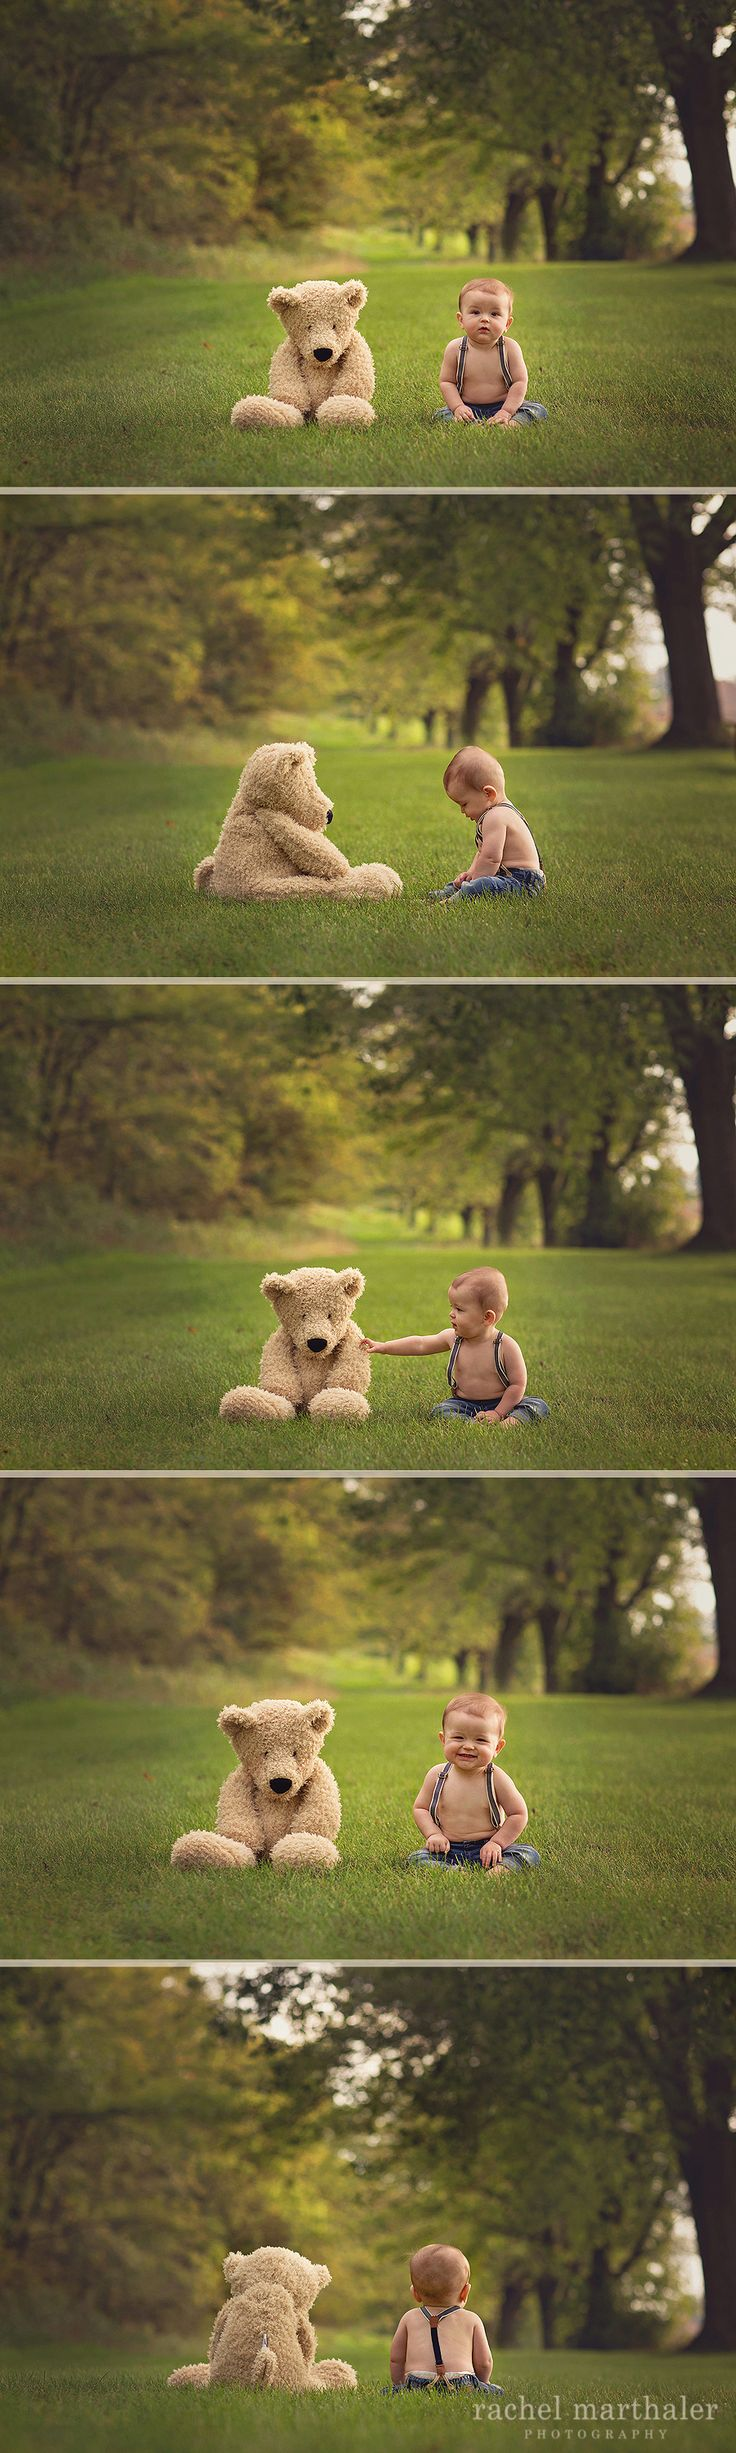 Baby Teddy Bear Photo, 8 month photo baby boy, Teddy bear, Twin Cities Photographer, Rachel Marthaler Photography